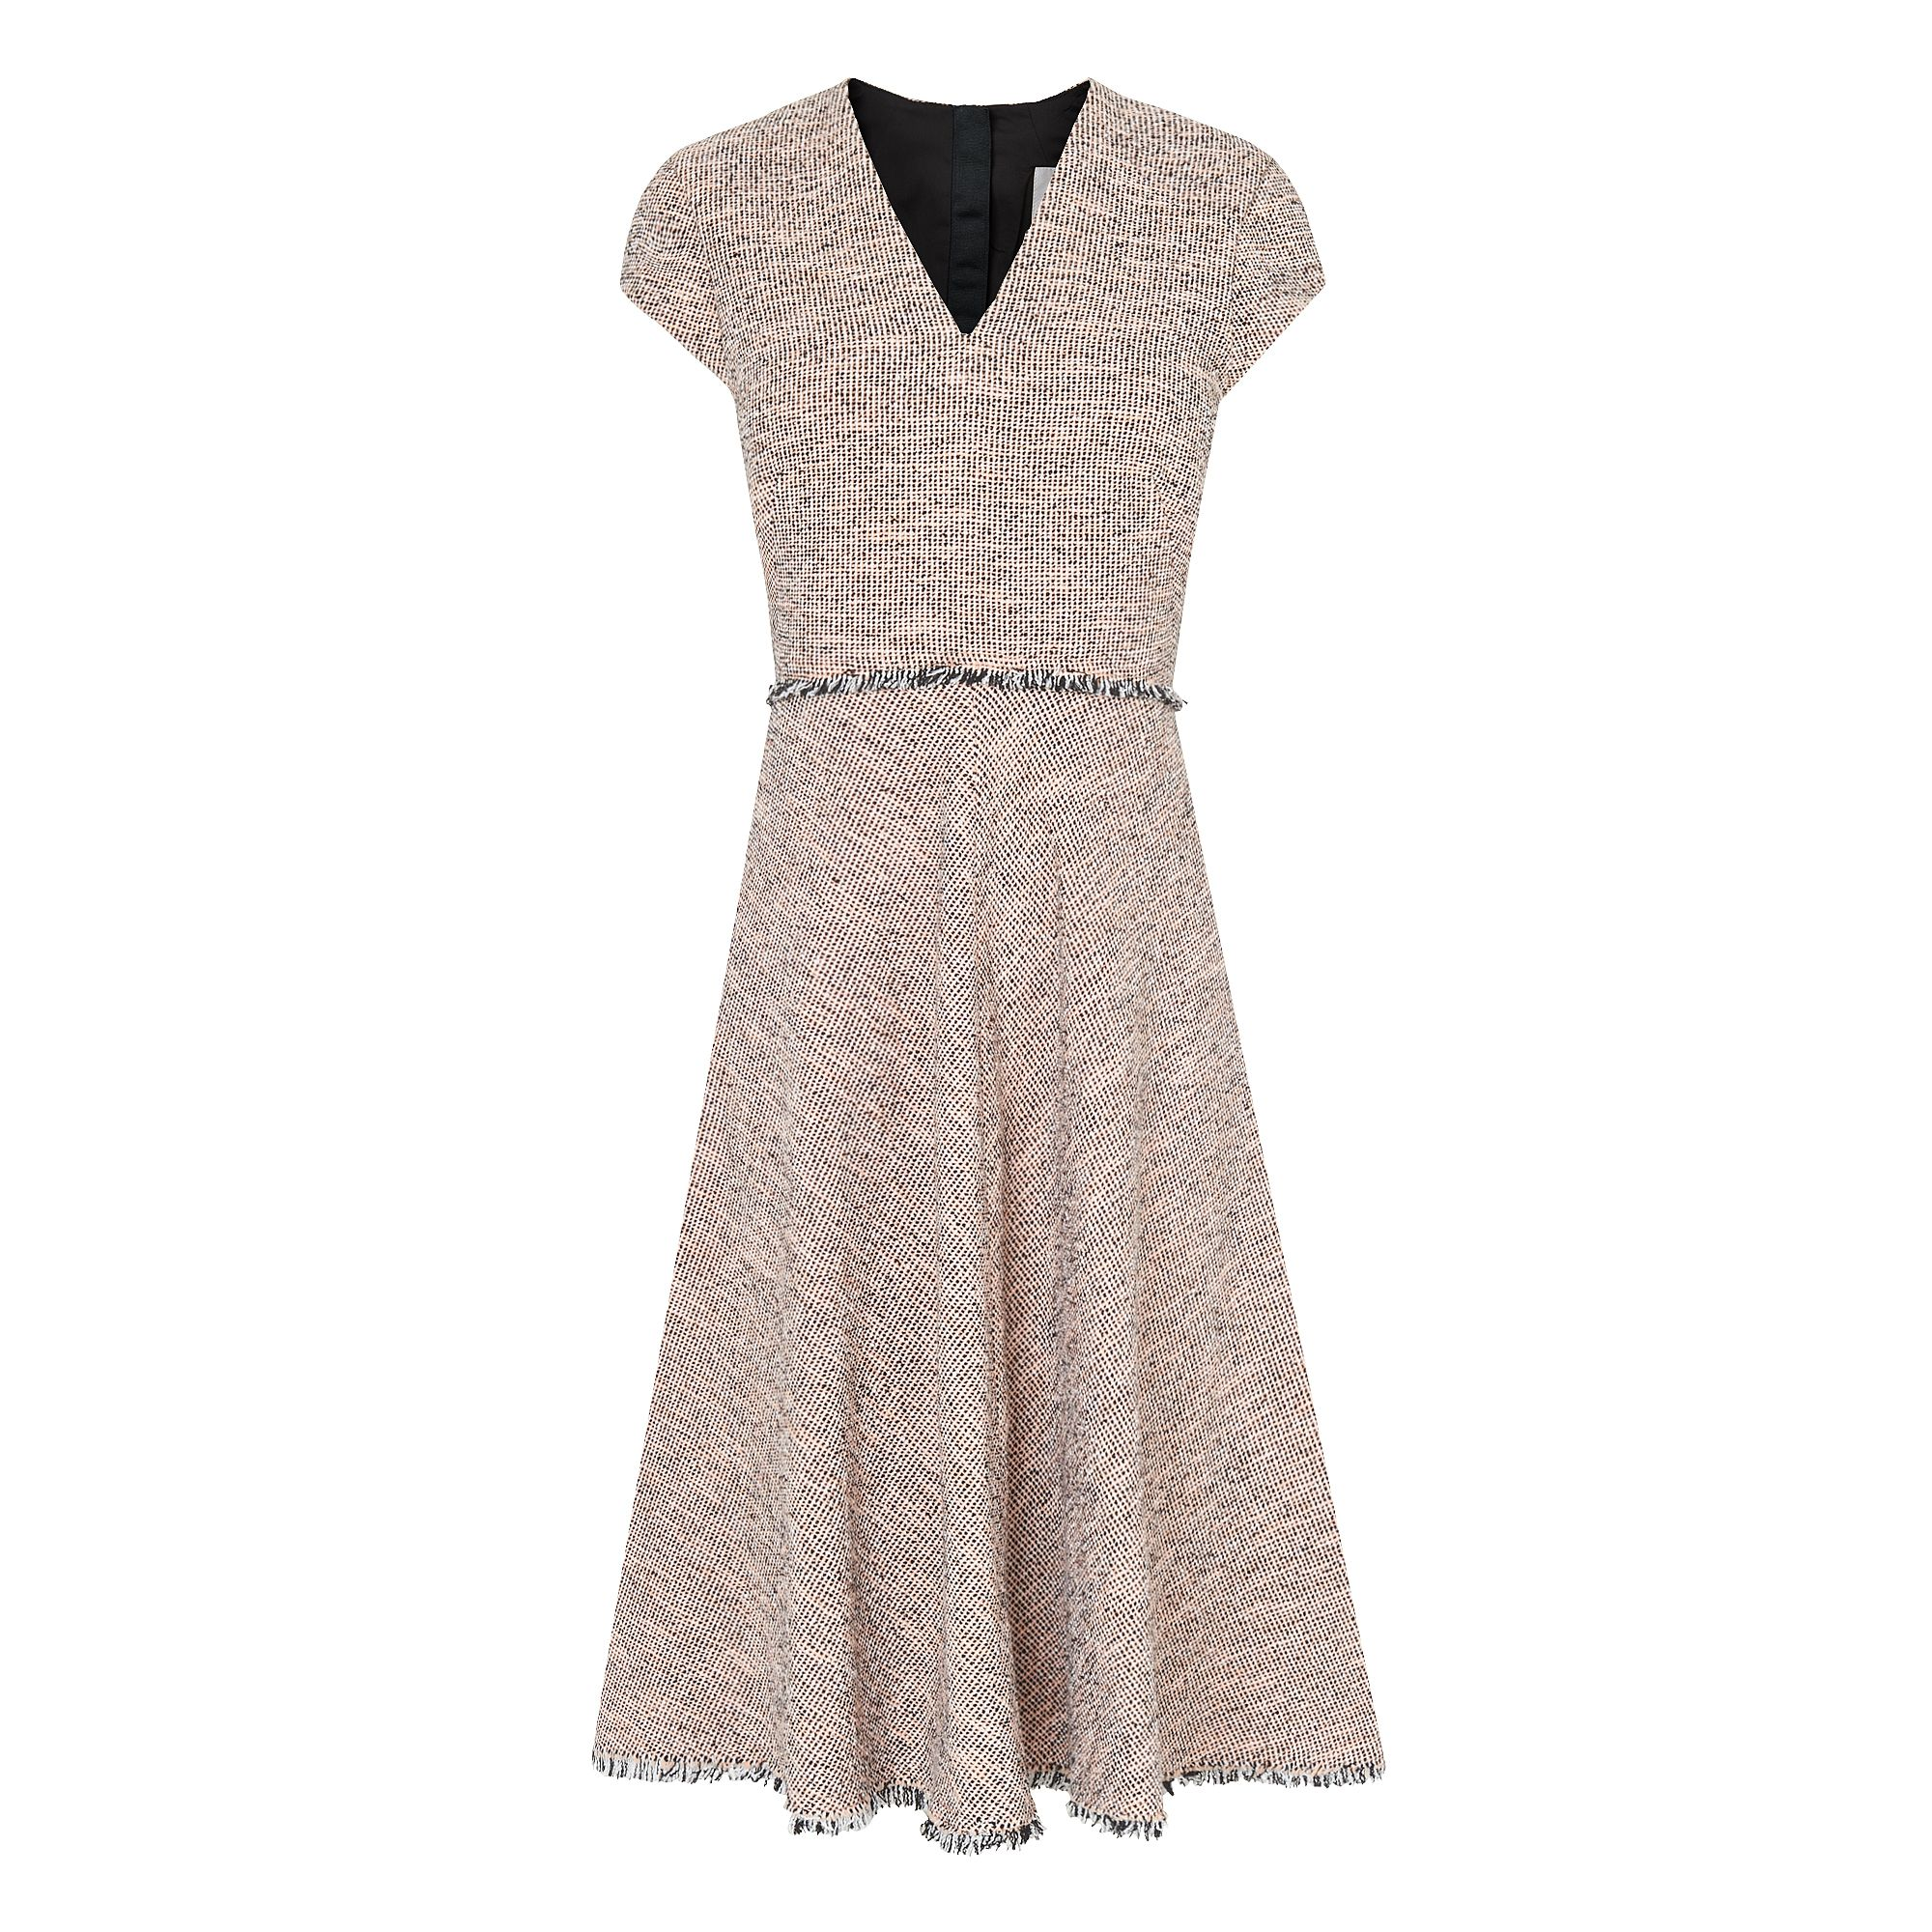 L.K. Bennett Shippa Pink Tweed Dress, Pink